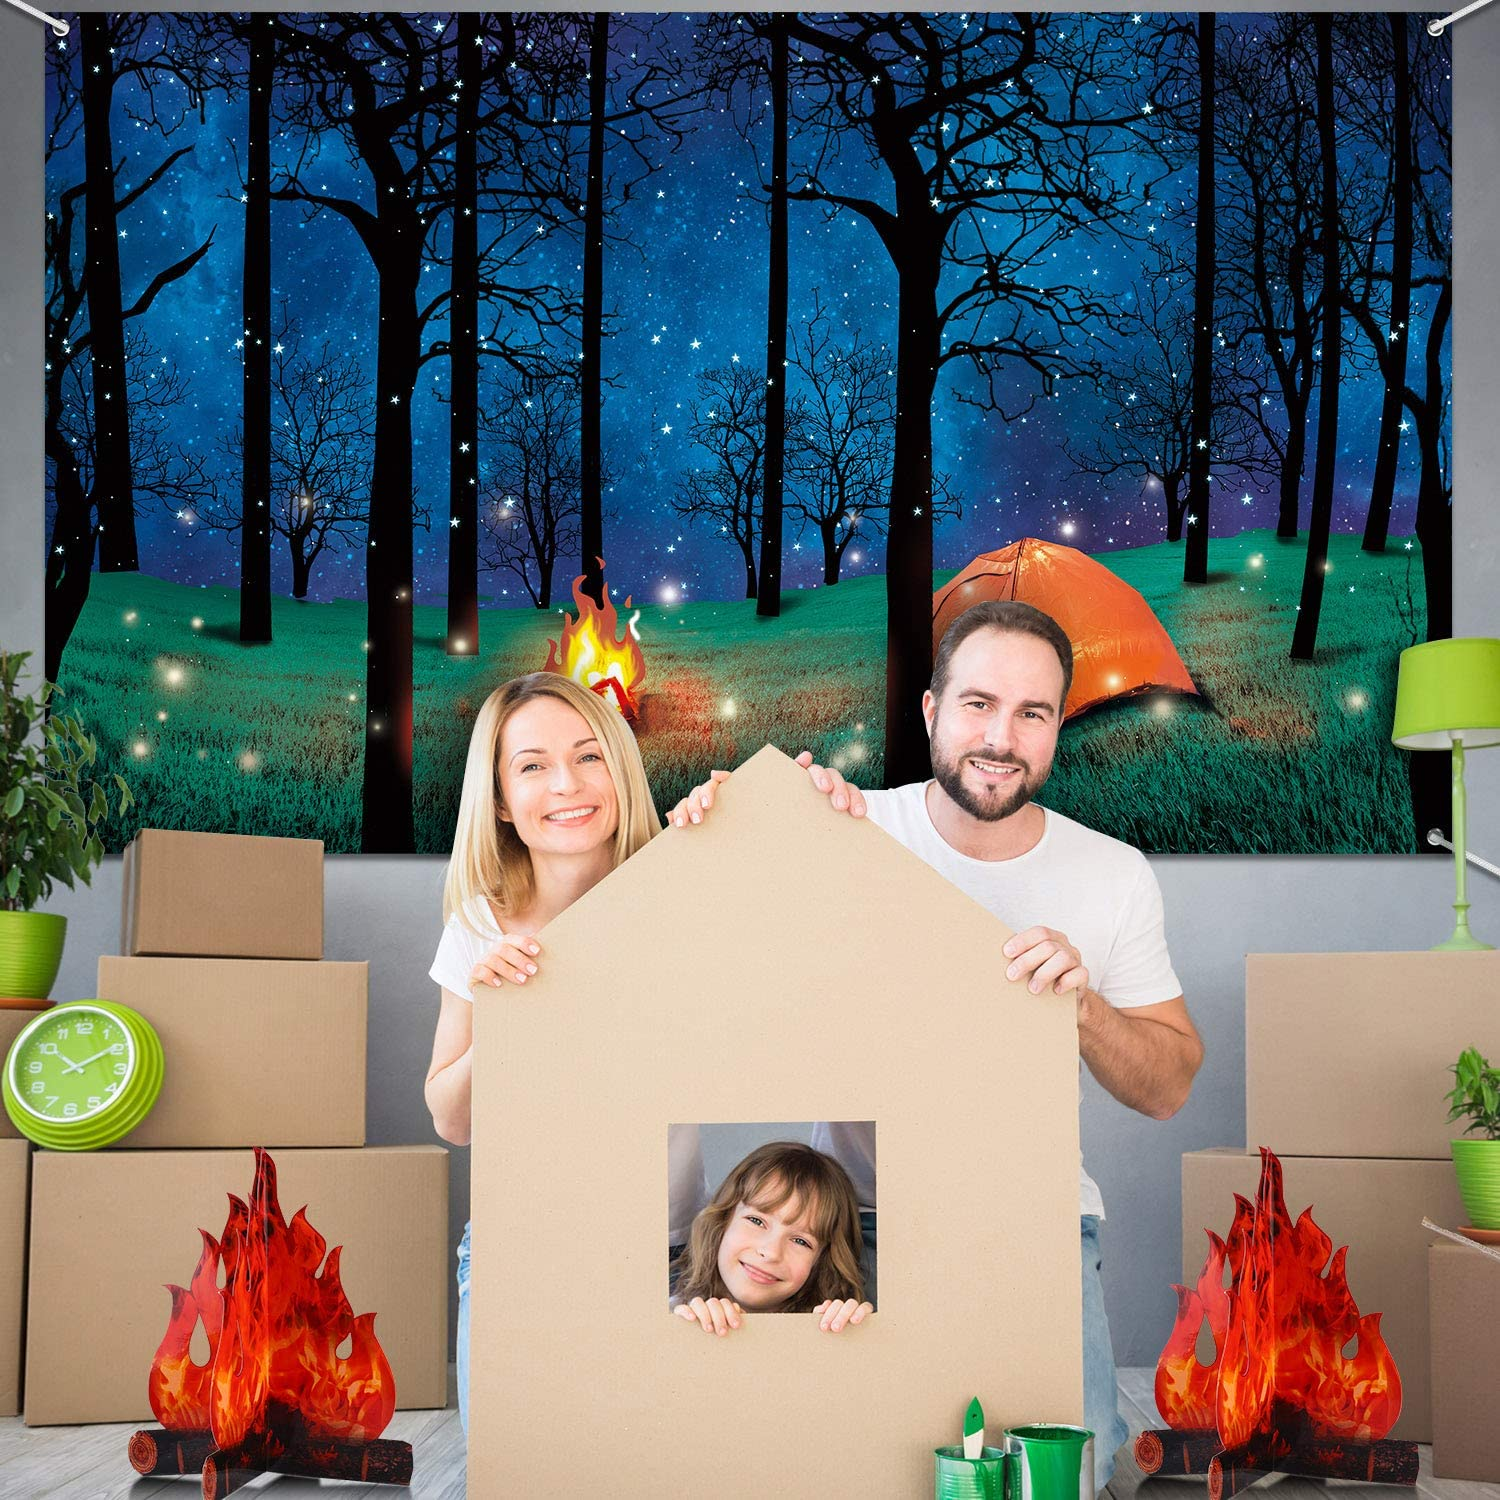 Forest Scene Camping Backdrop Camping Photography Background Camping Photo Backdrop and 2 Sets 3D Decorative Cardboard Campfire Centerpiece Artificial Fire Party Decoration for Camping Theme Party